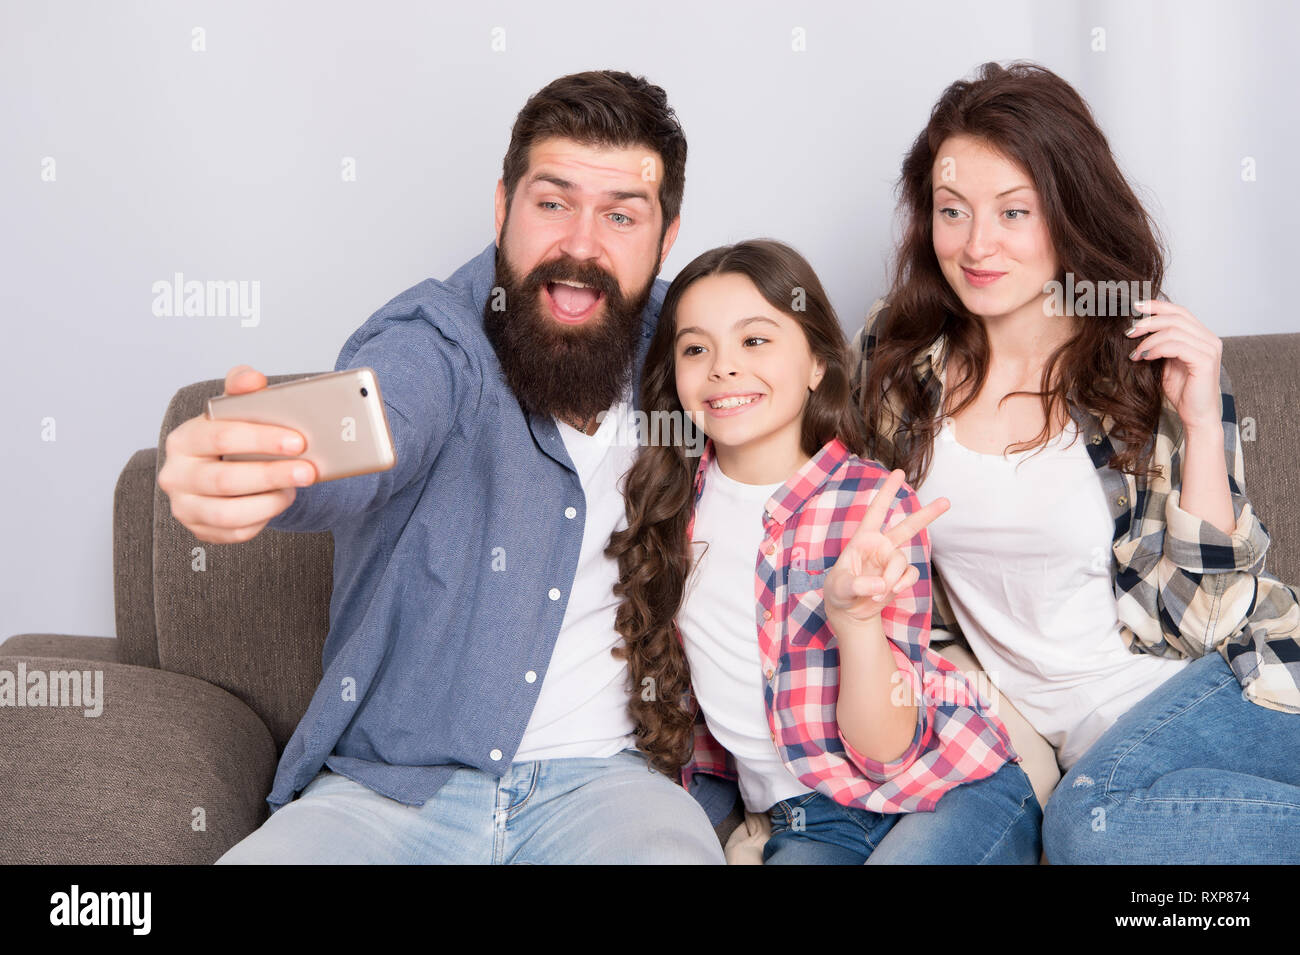 use smartphone for selfie